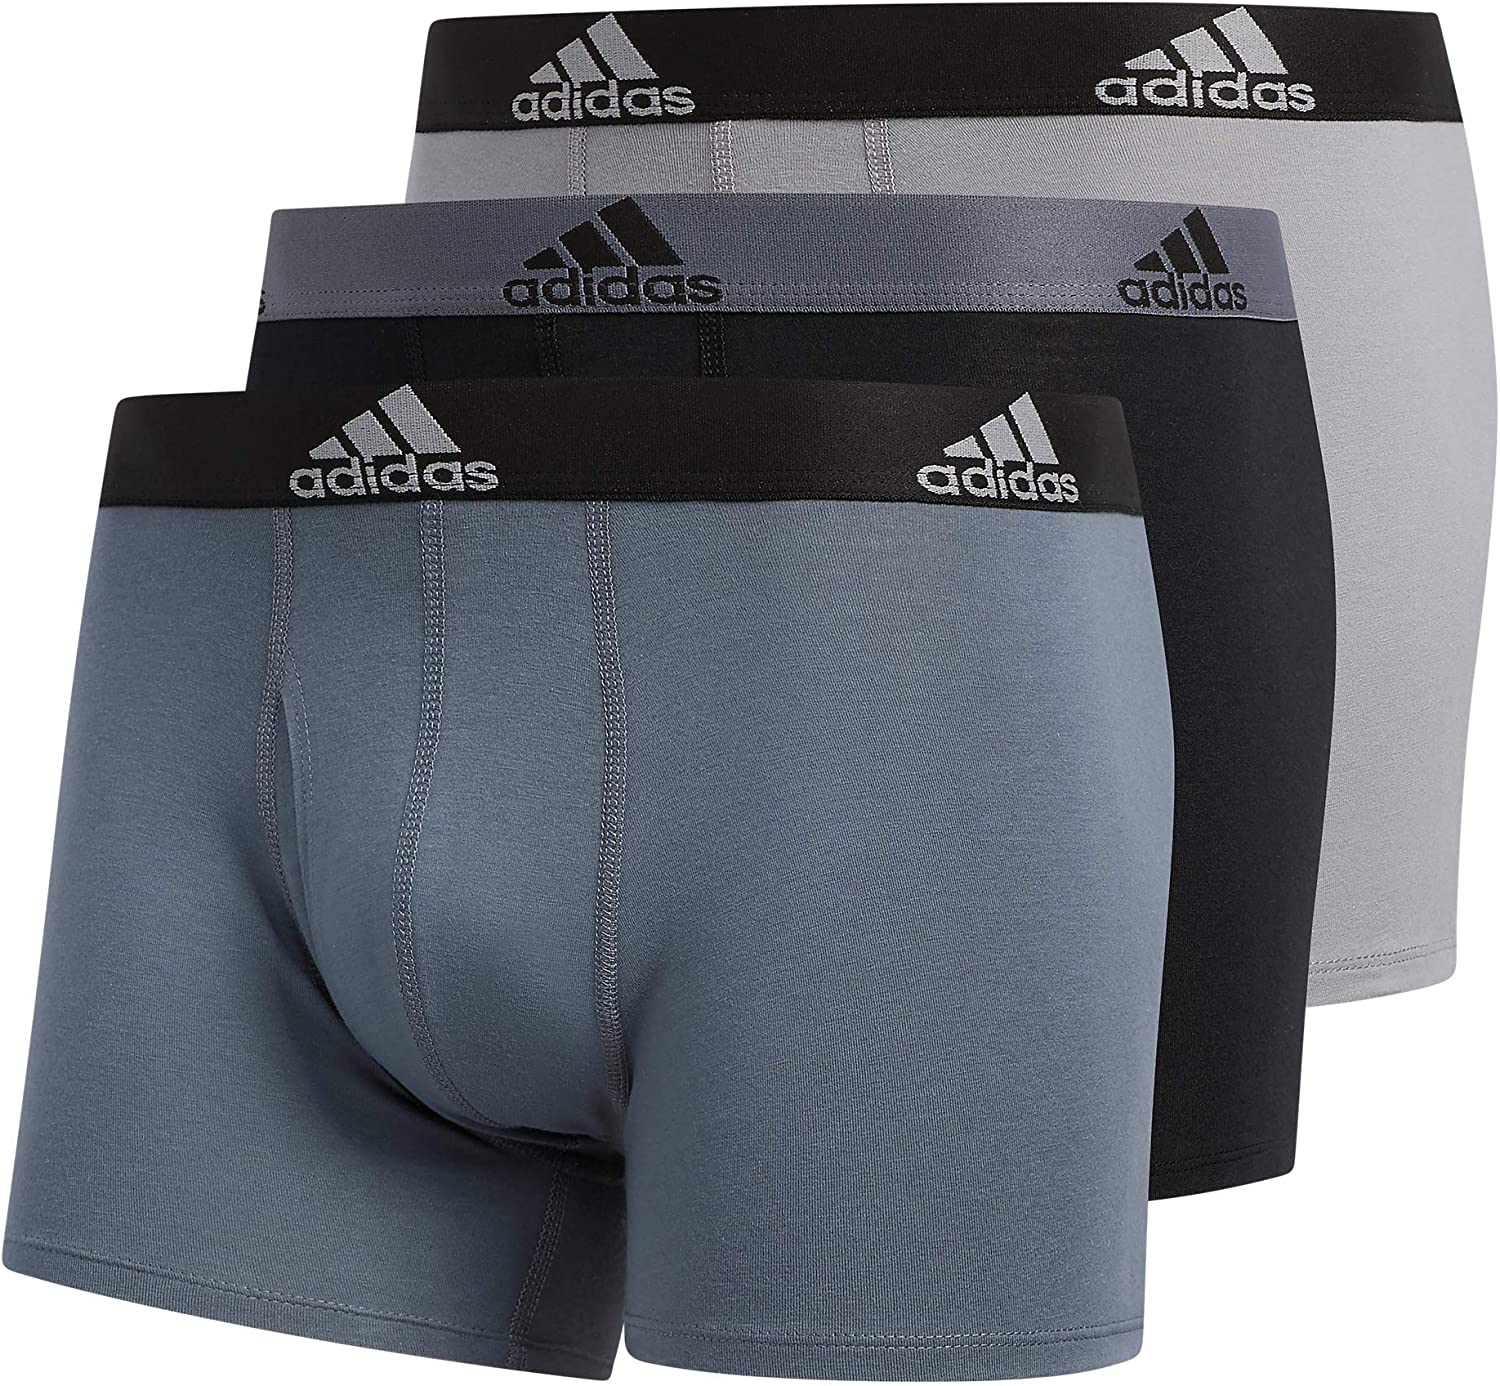 adidas Men's Ranking OFFicial mail order TOP5 Stretch Cotton Underwear 3-Pack Trunk